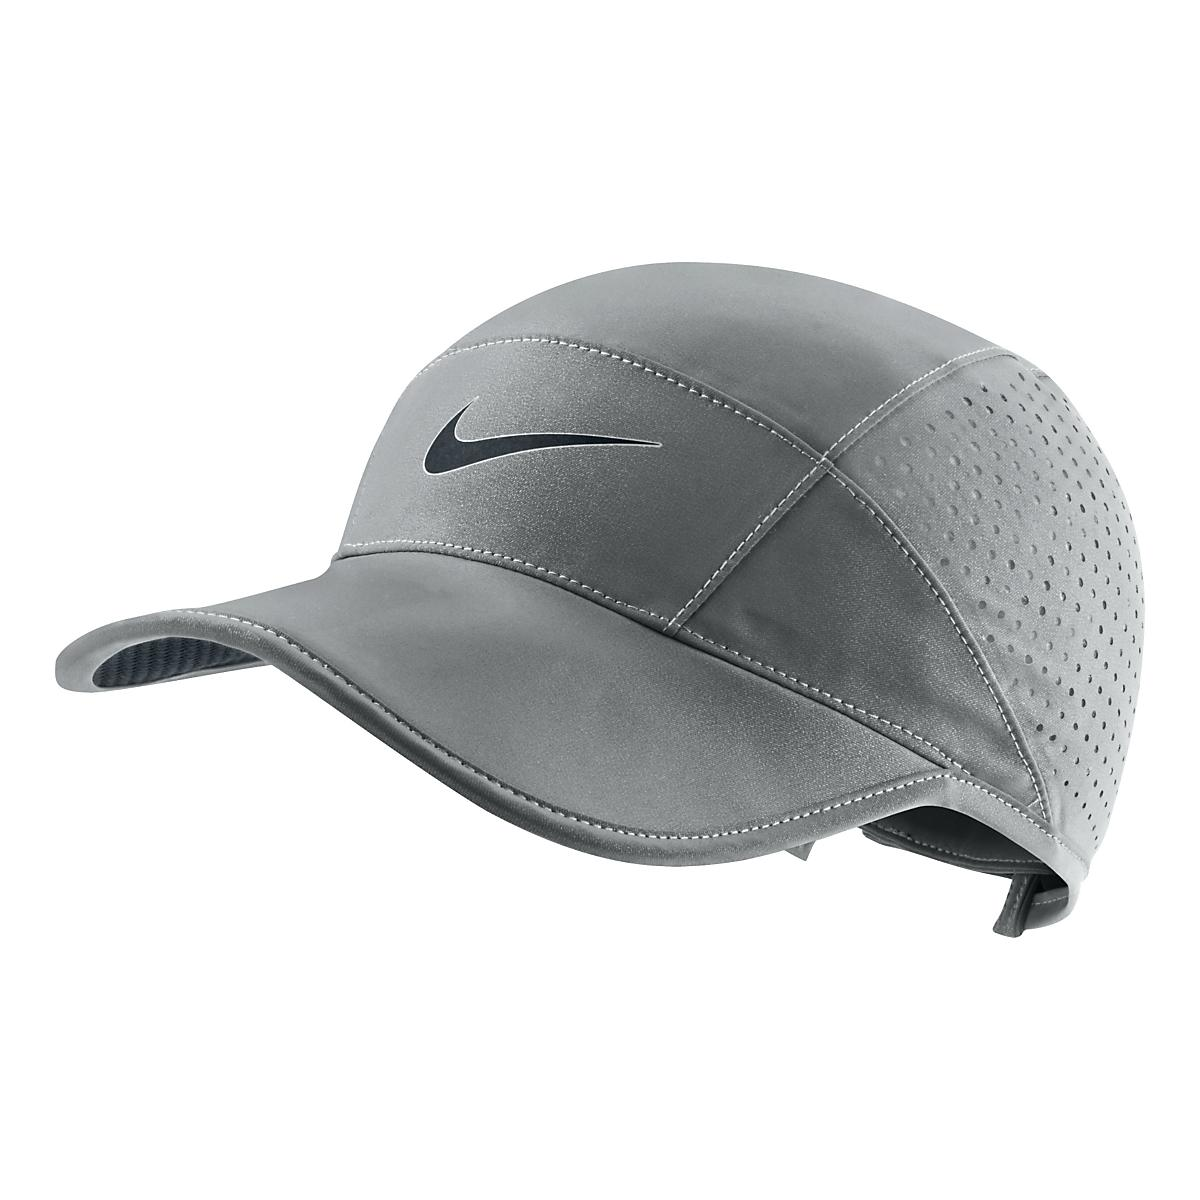 aa011a75 Nike Superfly Reflective Hat Headwear at Road Runner Sports